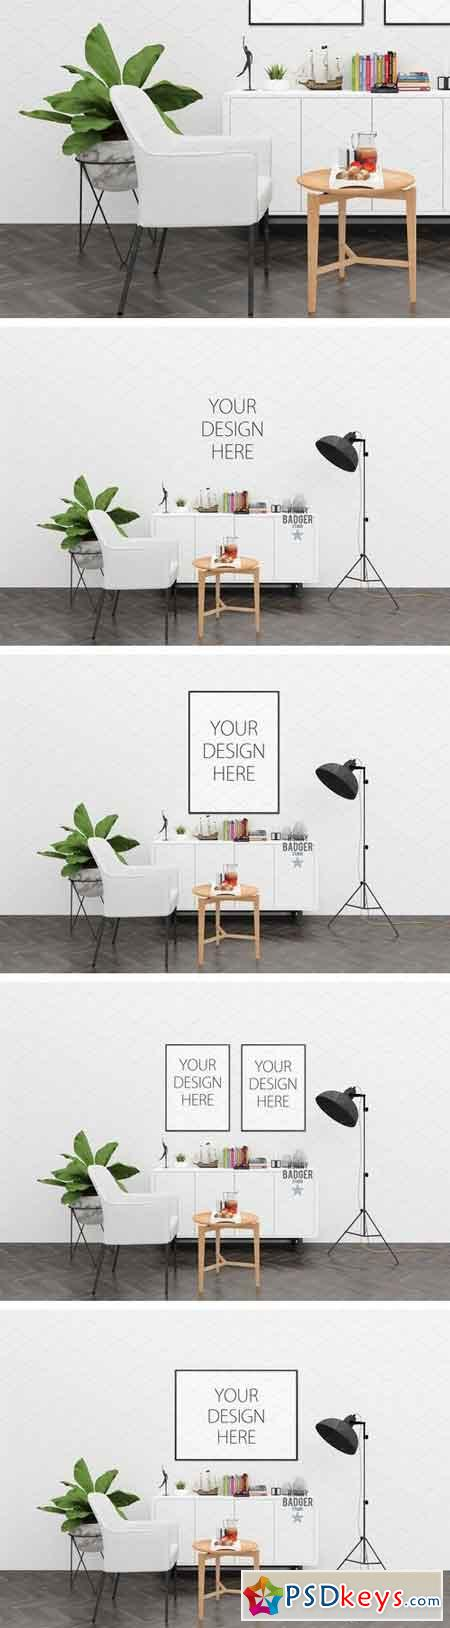 White wall mockup - interior mock up 1540247